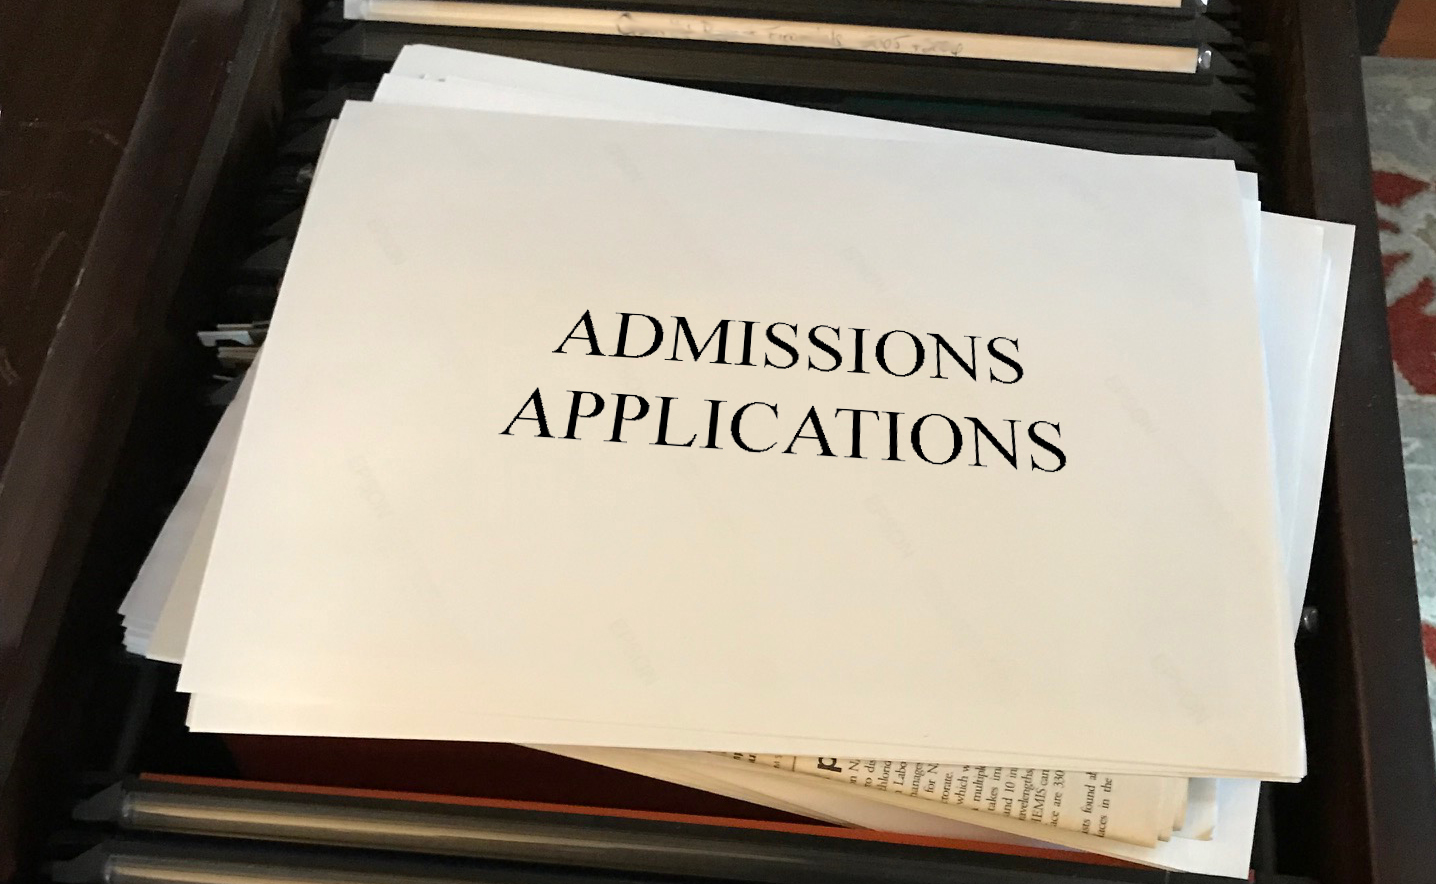 The college admissions process — who's at the helm?